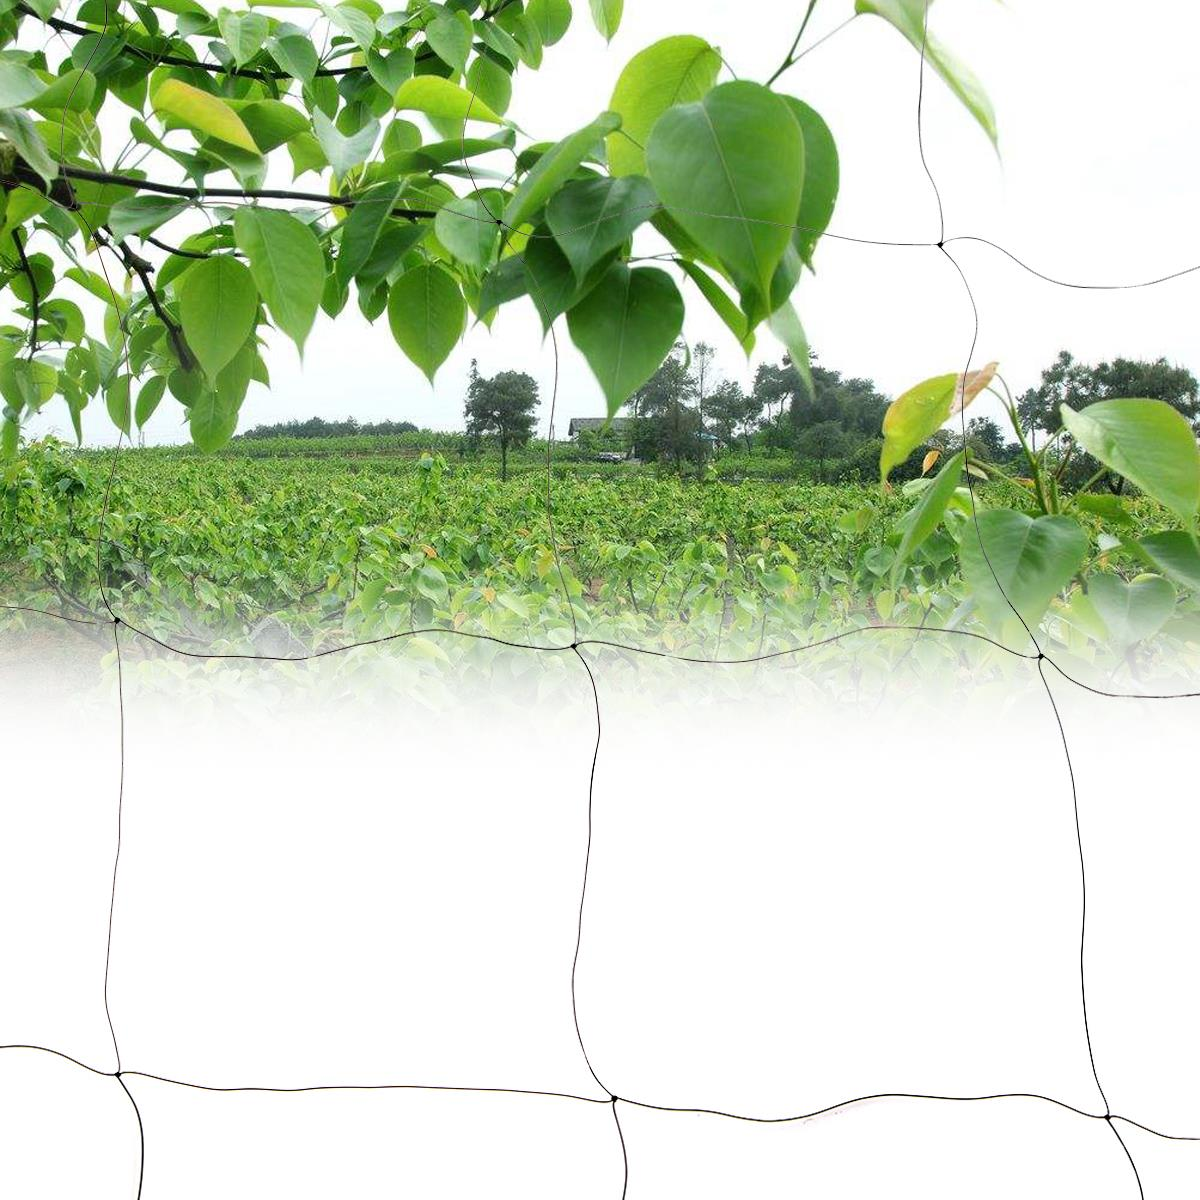 98X16ft Black Anti Bird Netting Soccer Baseball Game Field Mesh Net Canopy Poultry Fish Net Garden Orchard Pest Control Supplies-in Repellents from Home ...  sc 1 st  AliExpress.com & 98X16ft Black Anti Bird Netting Soccer Baseball Game Field Mesh ...